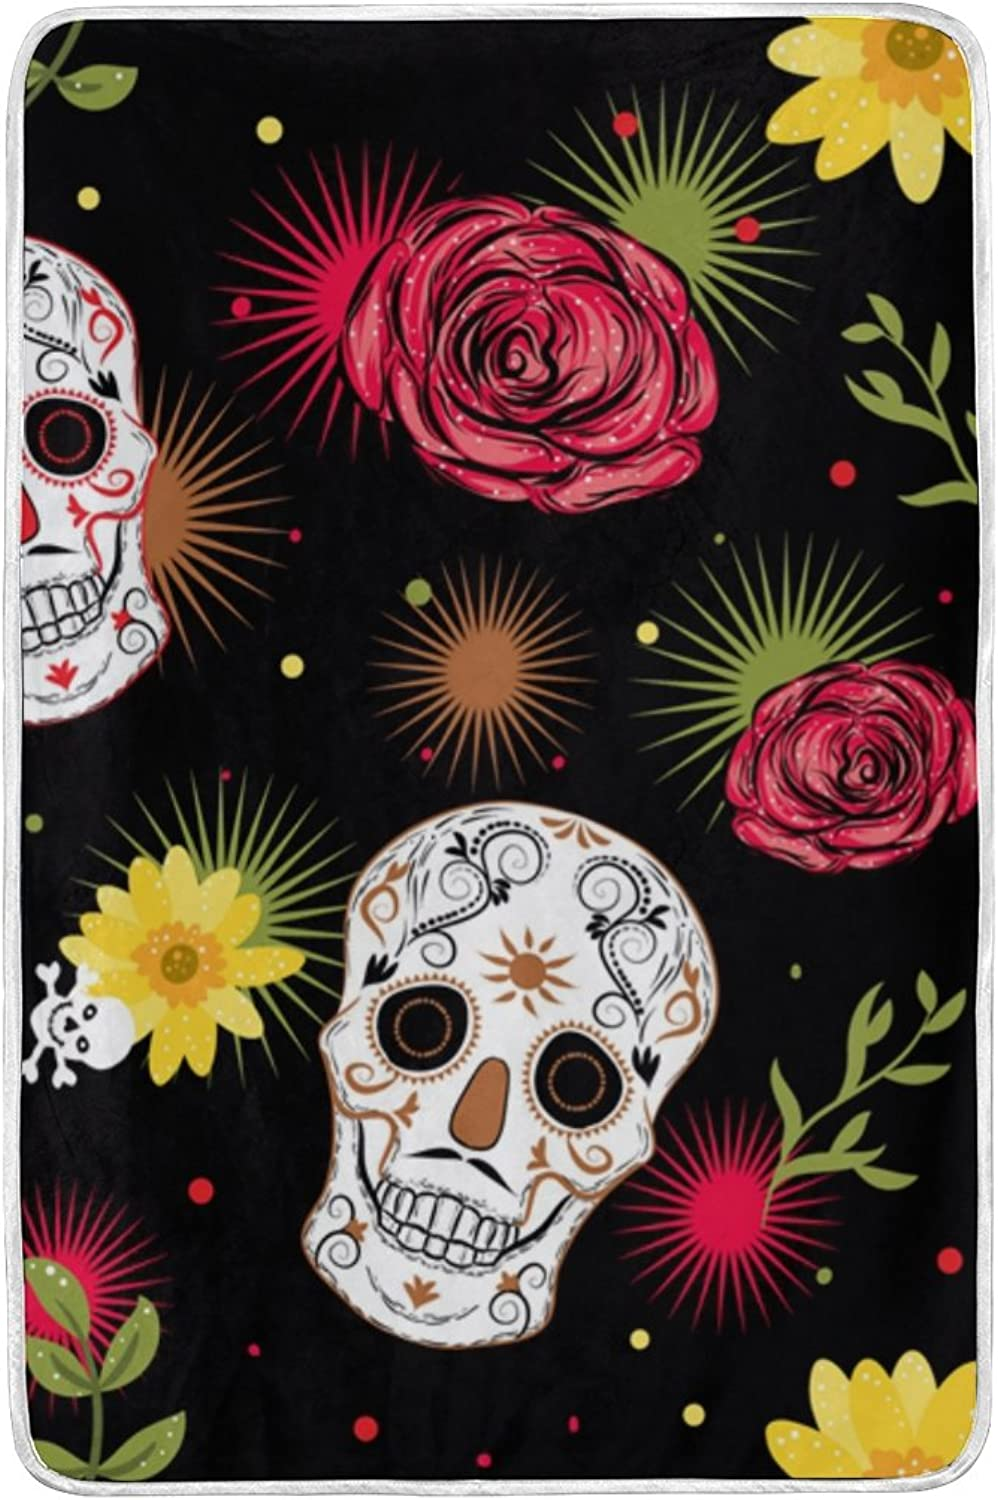 JSTEL Mexican Skull pink Lightweight Blanket for Adults Men Women Girls Kids Girls Boys Teens Bed Extra Soft Polyester Fabric Super Warm Sofa Blanket Throw Size 60 x 90 Inch